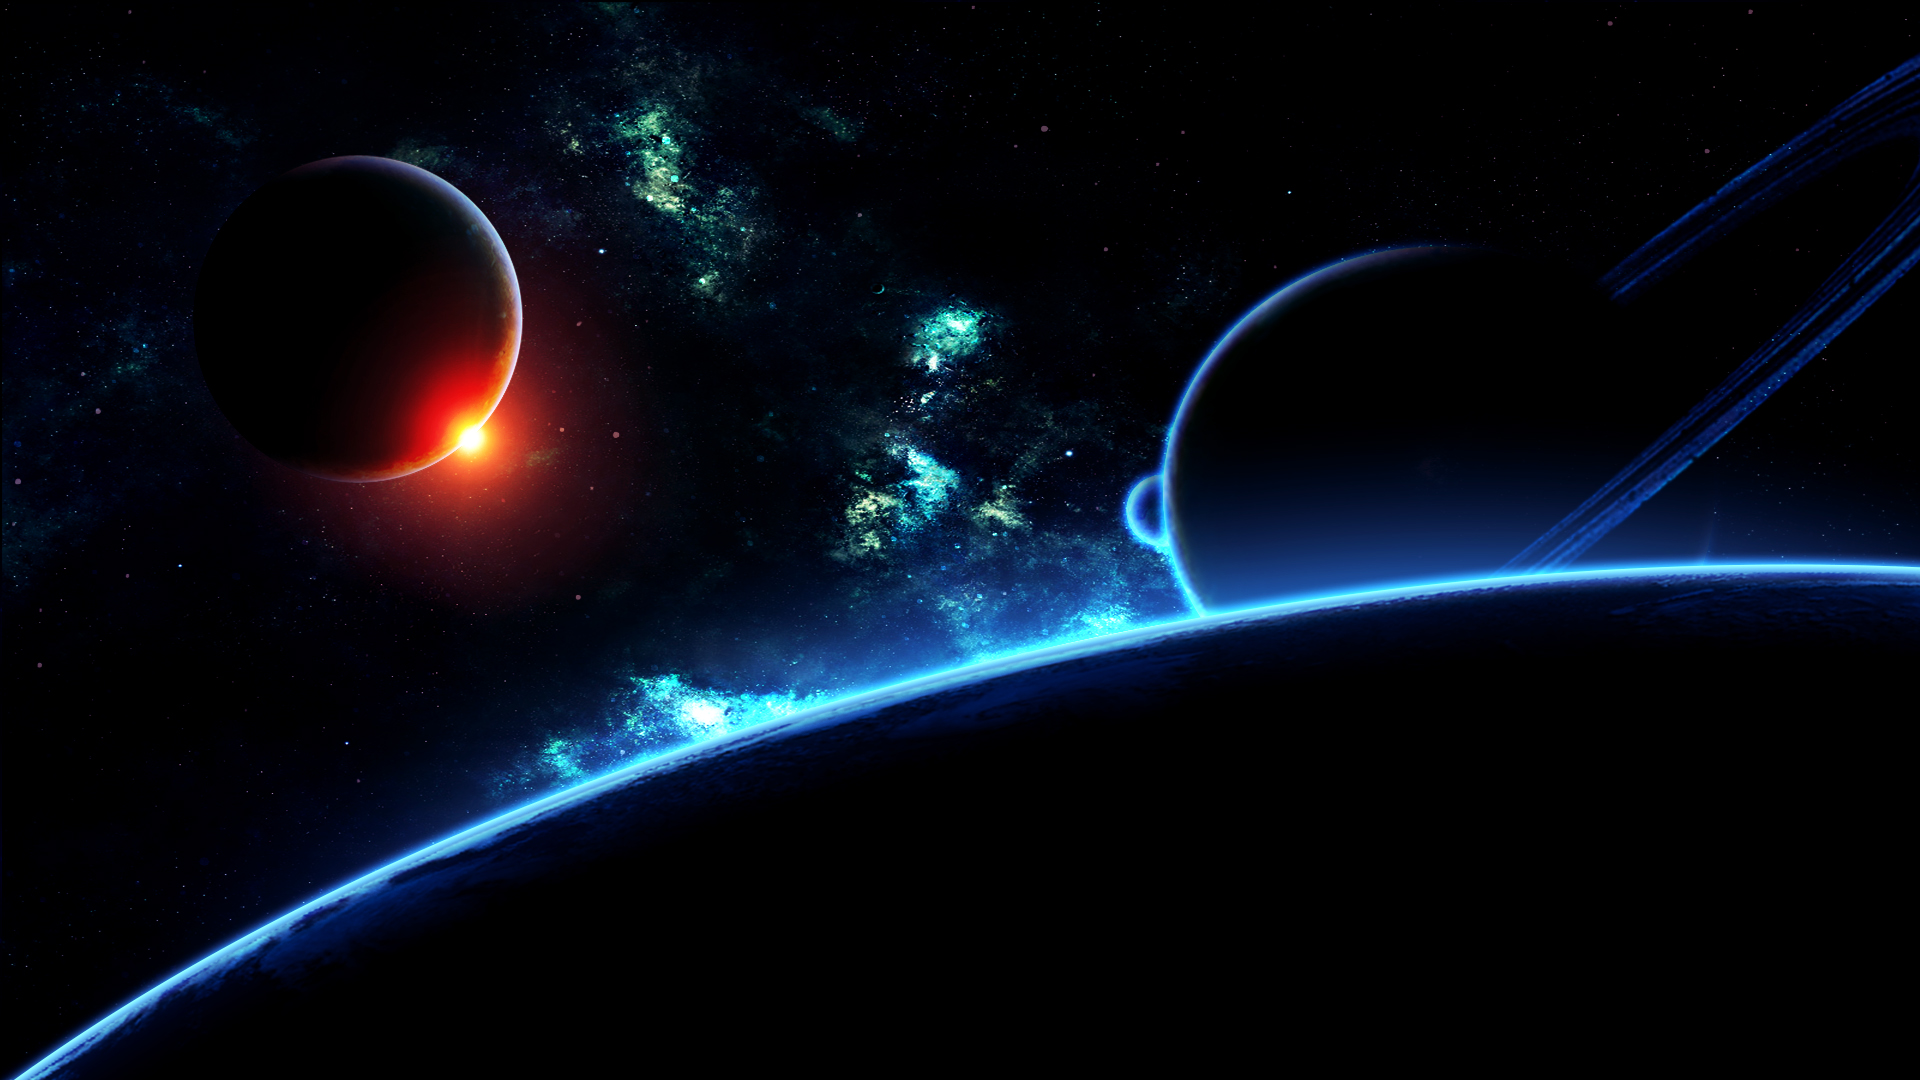 Deep space wallpaper Wallpaper Wide HD 1920x1080